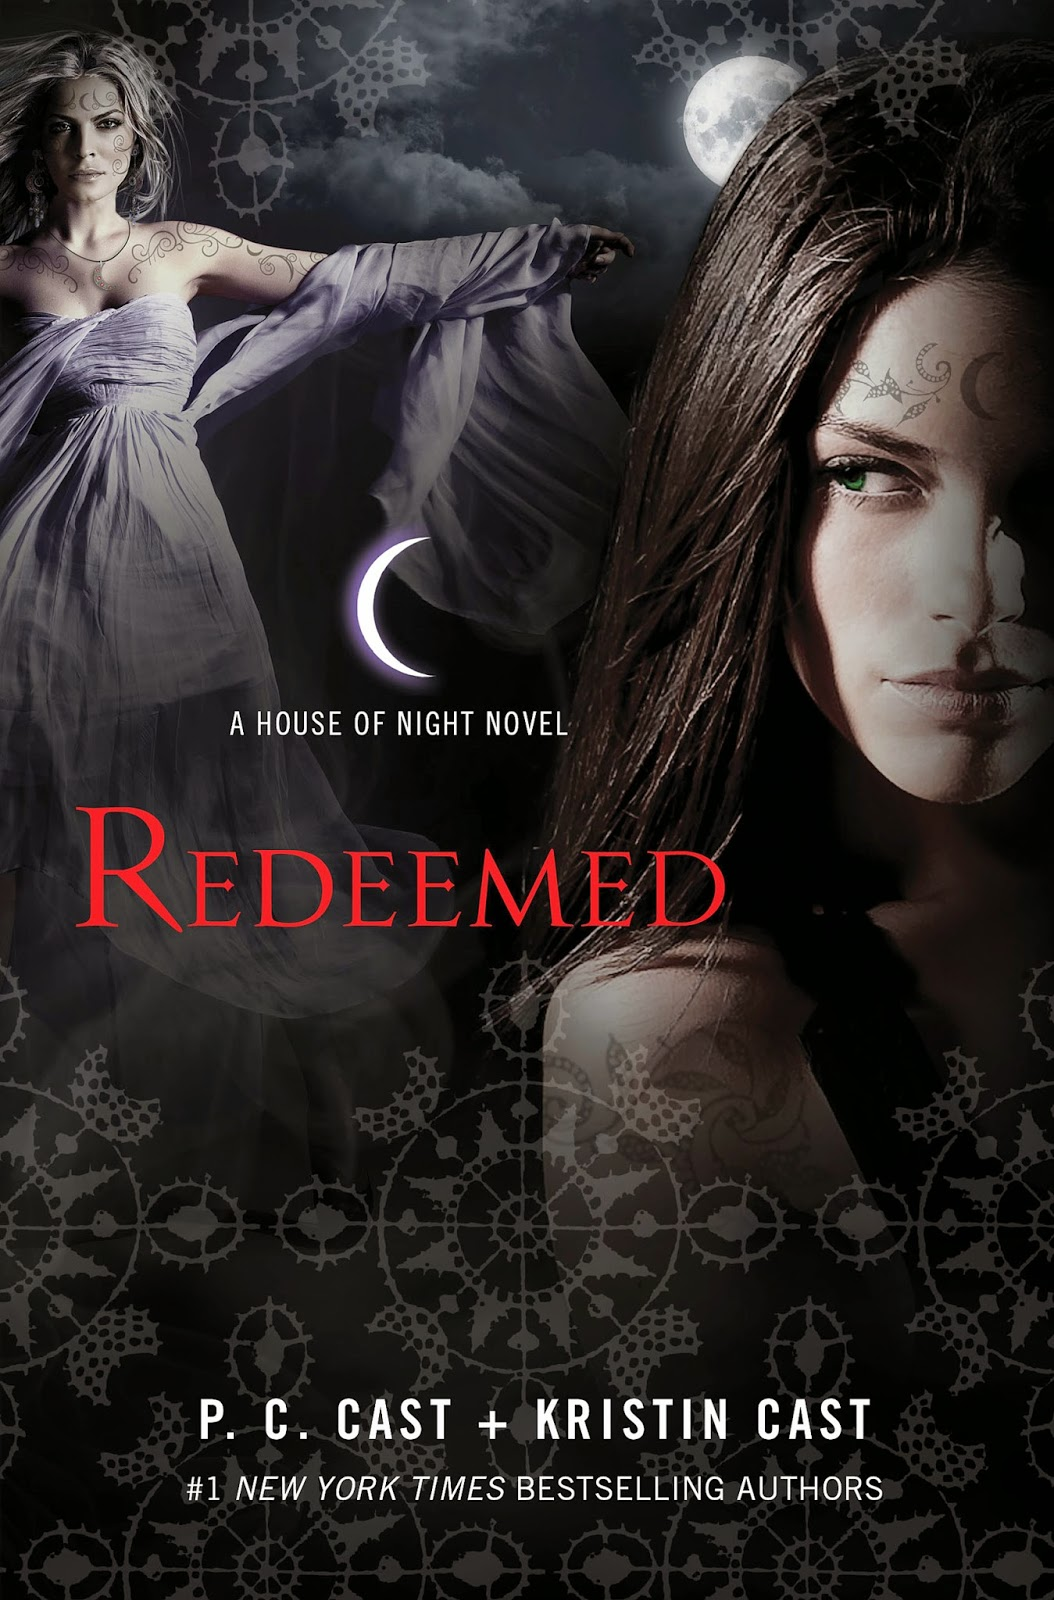 https://www.goodreads.com/book/show/16136599-redeemed?from_search=true